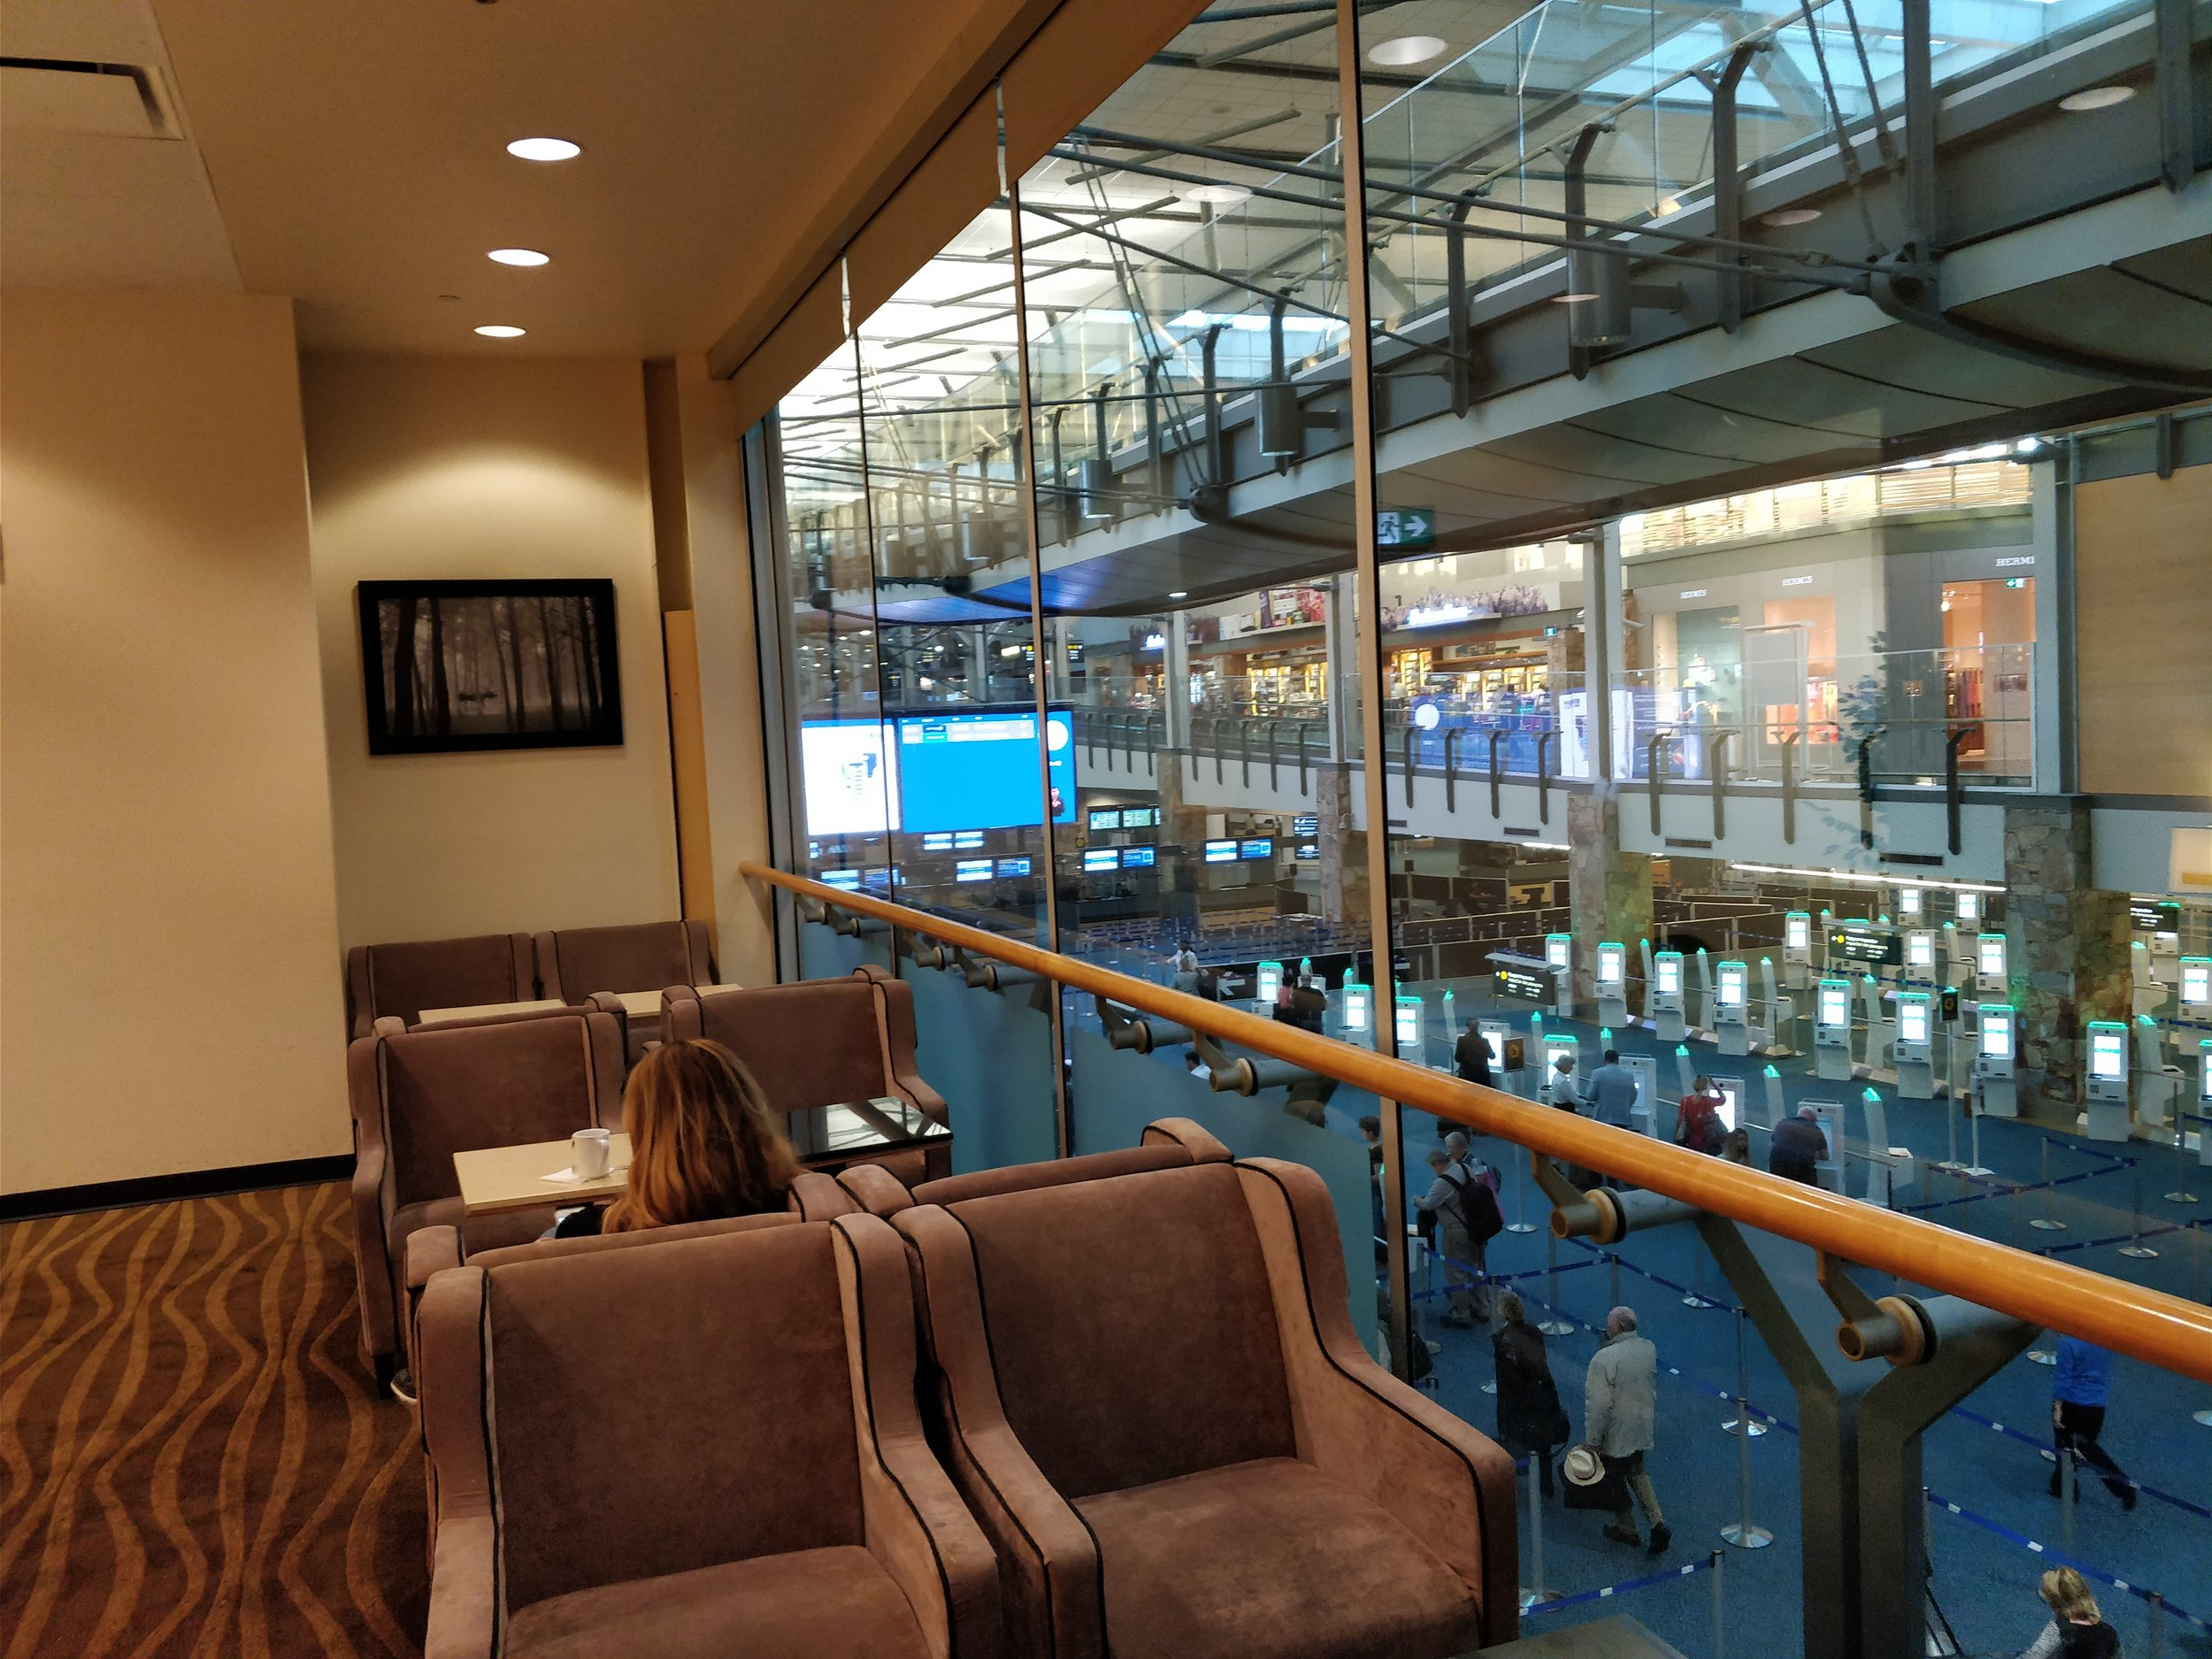 seats witha a view of the arrivals hall